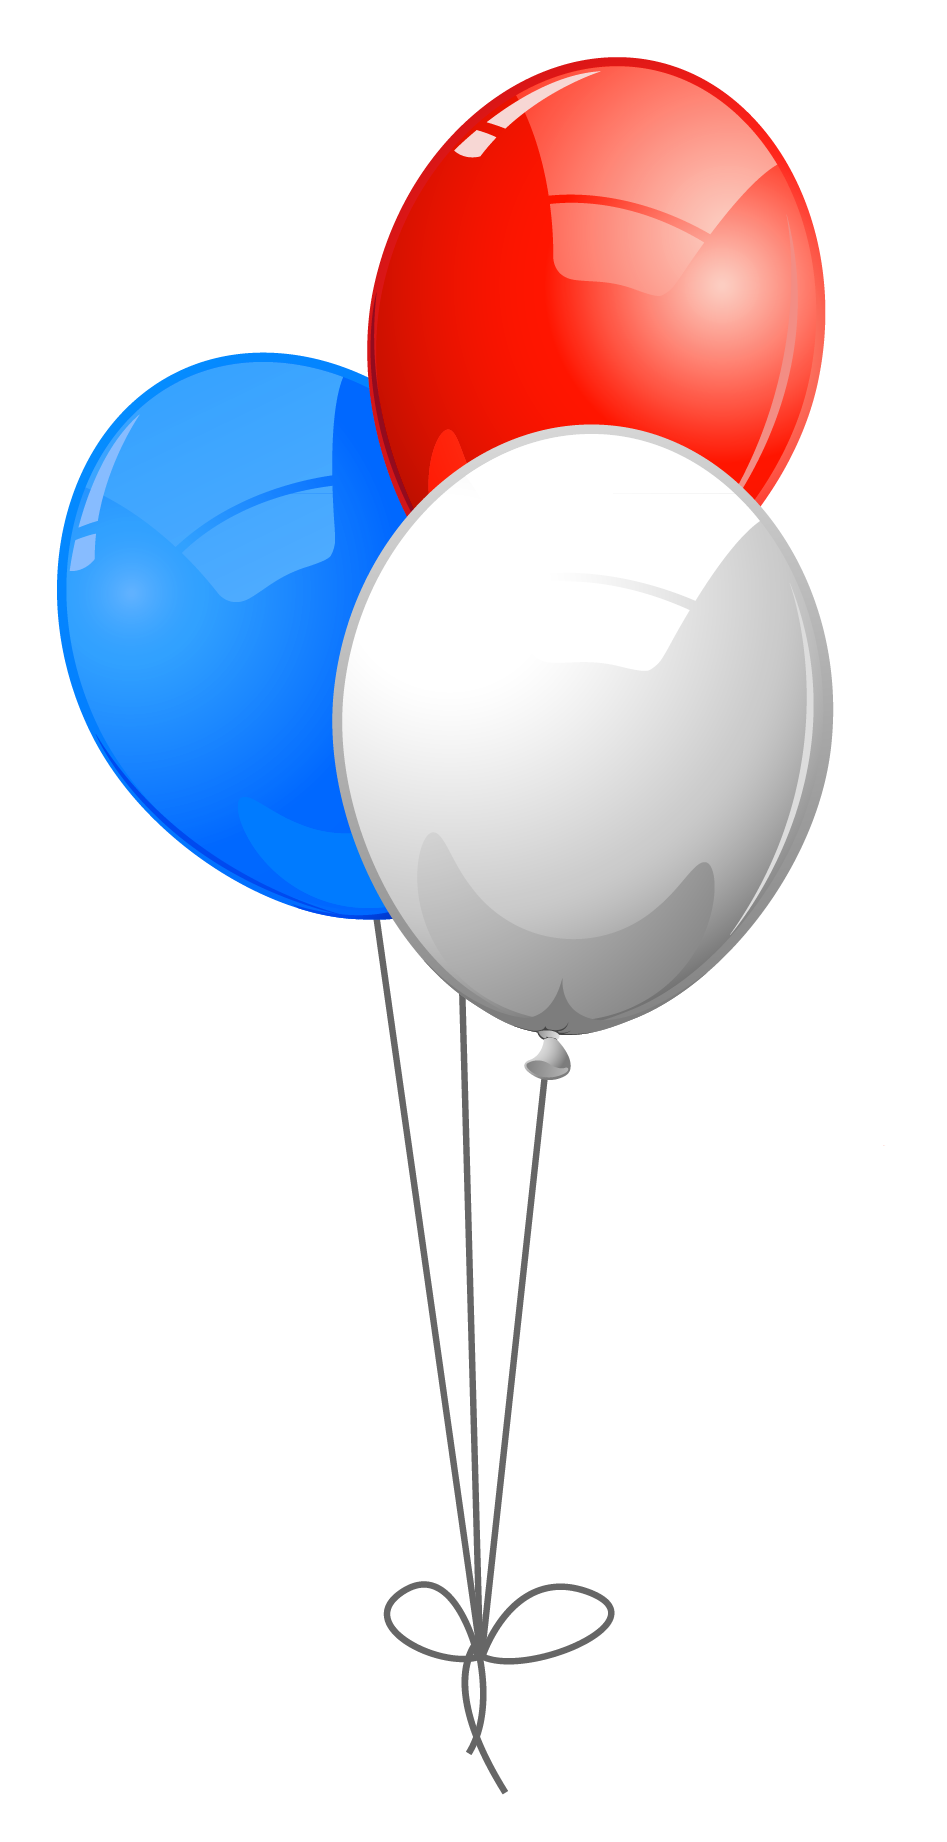 th of balloons. Clipart balloon 4th july